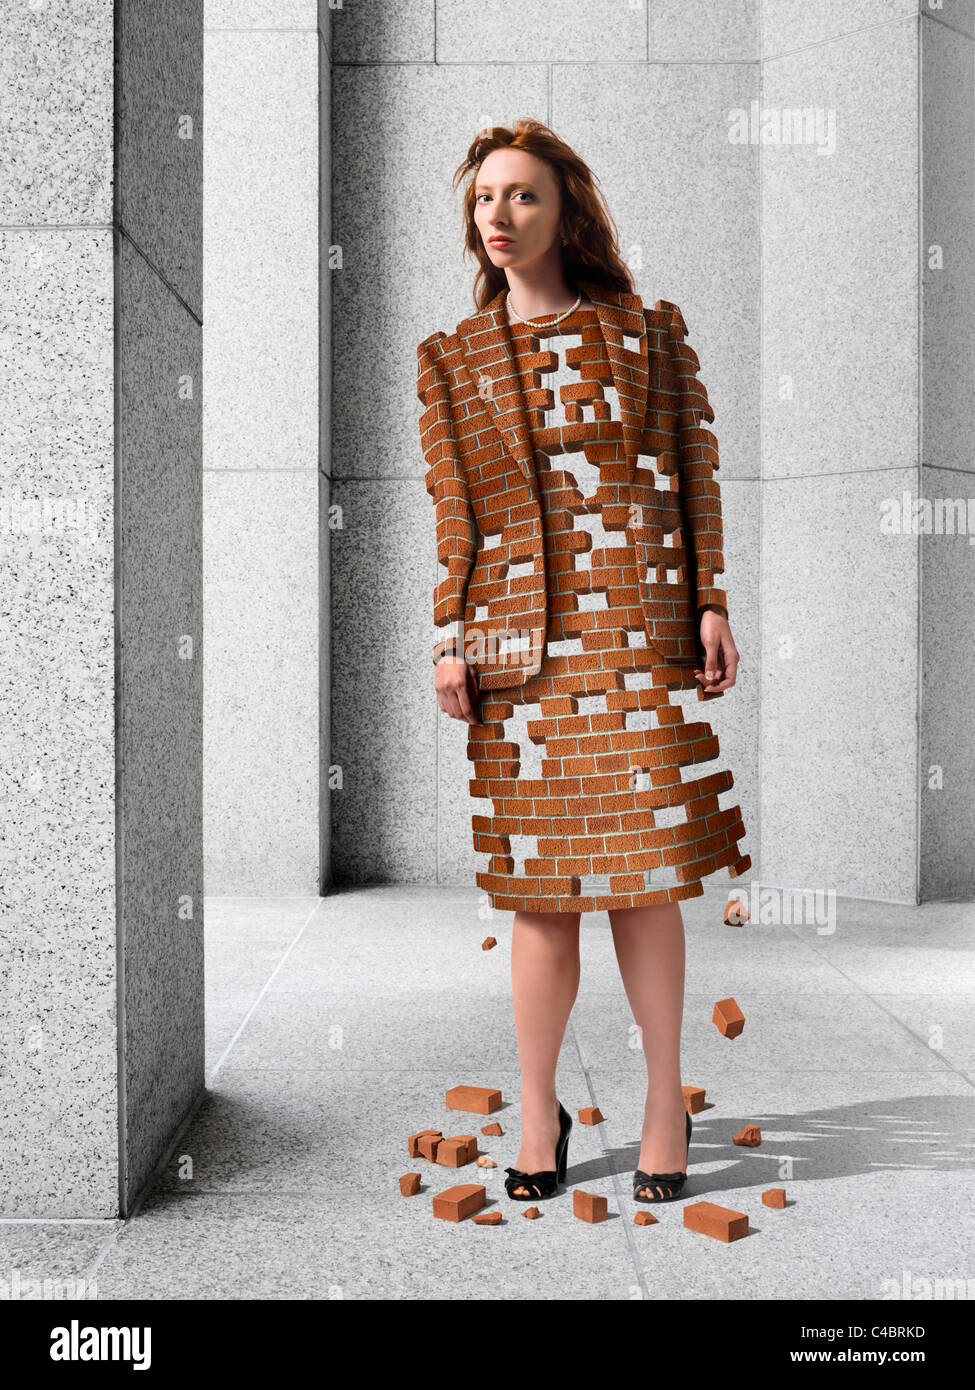 woman made of bricks that are breaking apart, standing in outdoor plaza with granite columns - Stock Image